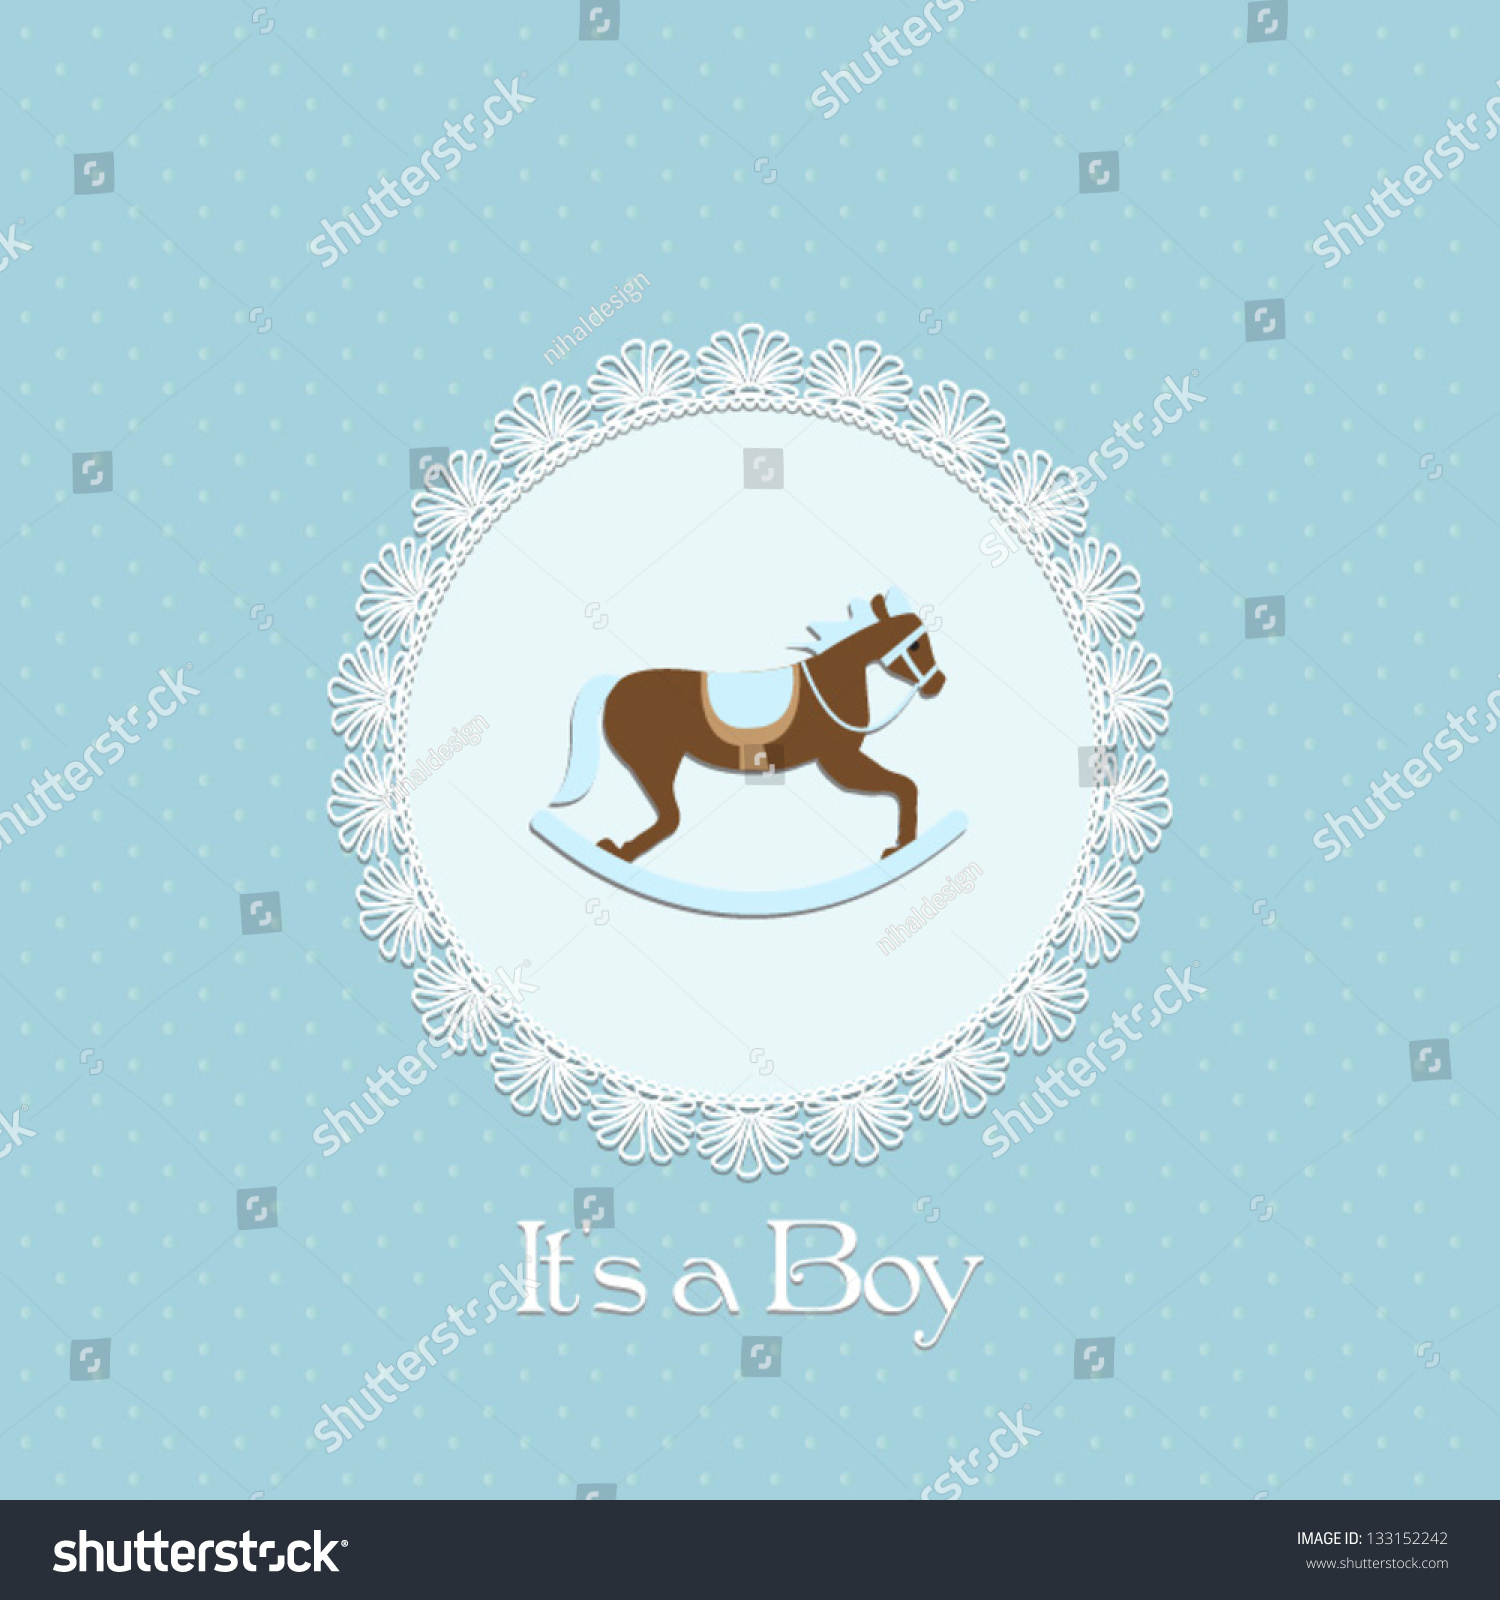 Baby shower invitation baby boy rocking stock vector royalty free baby shower invitation baby boy with rocking horse and lace framector eps10 filmwisefo